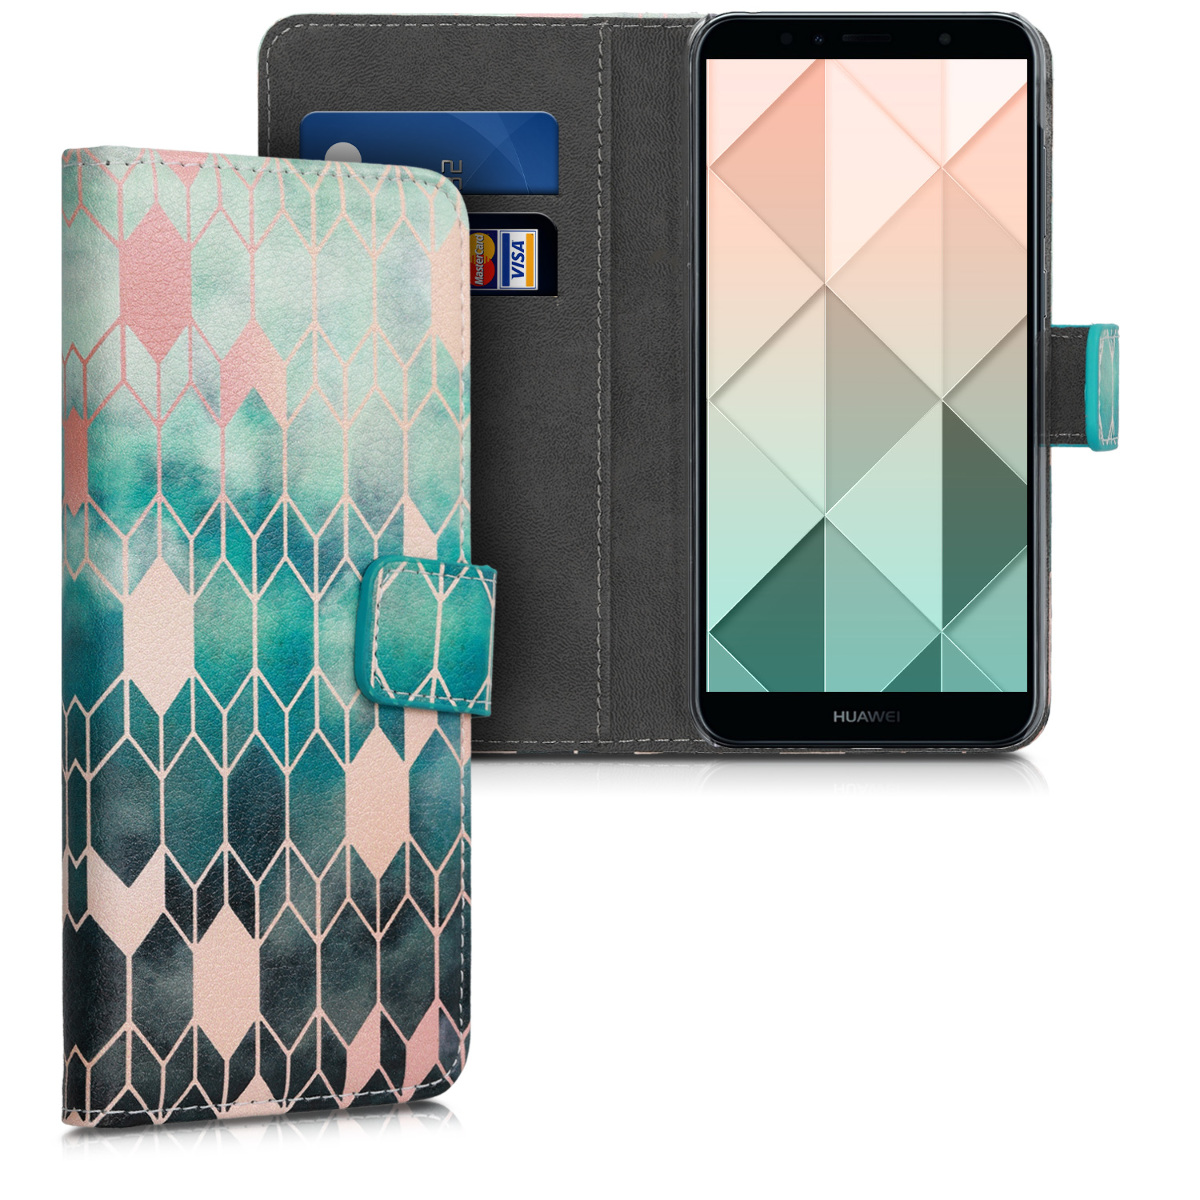 KW Θήκη - Πορτοφόλι Huawei Y6 2018 - Leather Protective Flip Cover - Blue / Rose Gold (45923.11)